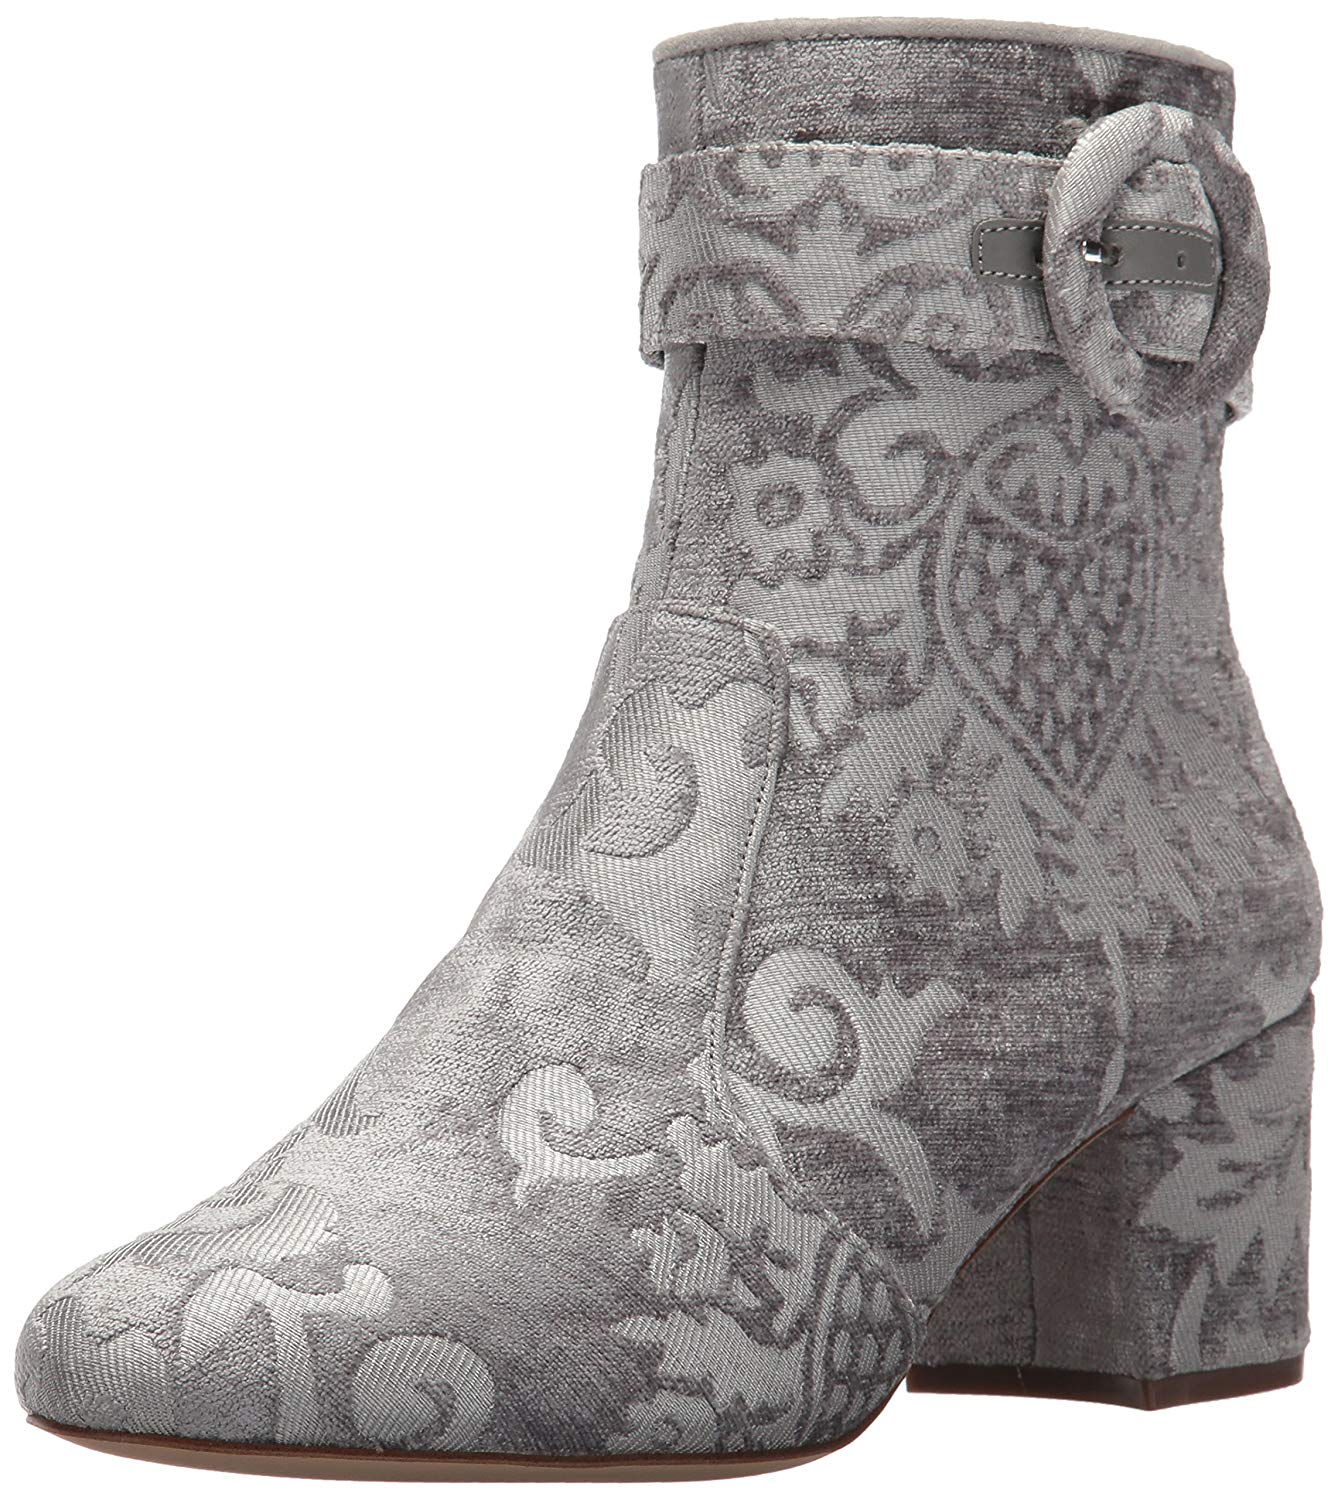 494ccde09b50d Details about Nine West Womens Quilby Fabric Closed Toe Mid-Calf Fashion  Boots